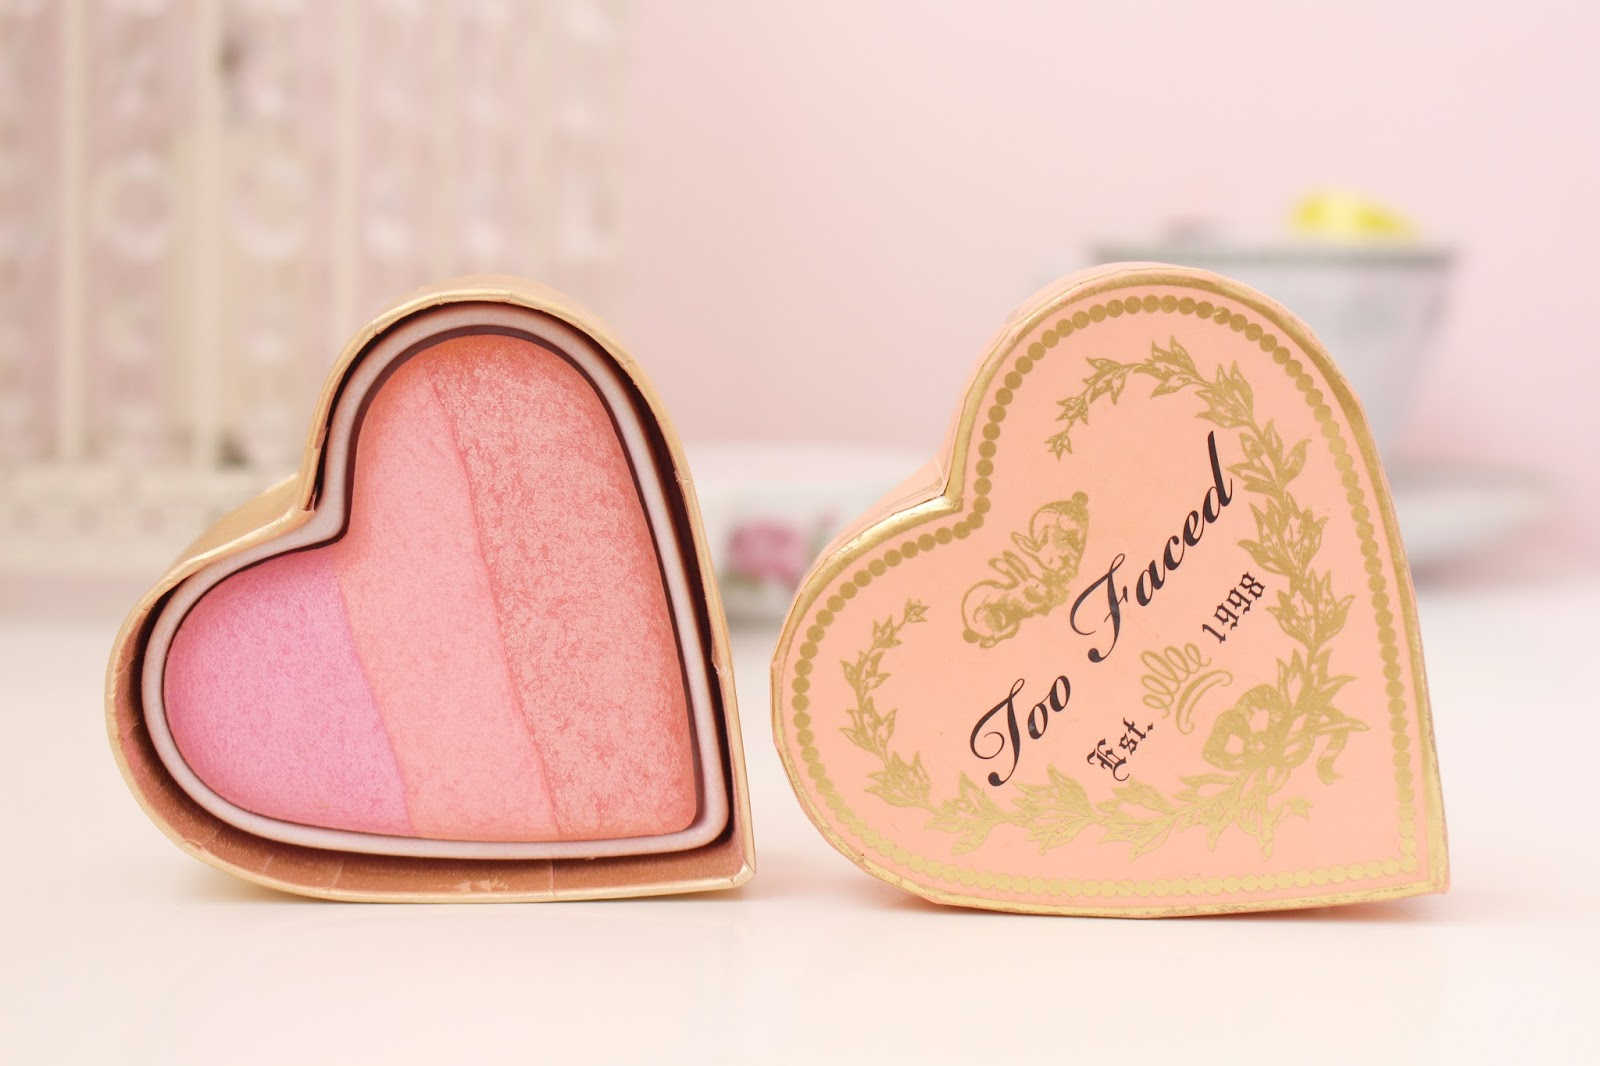 Too Faced Sweetheart Blush in Candy Glow